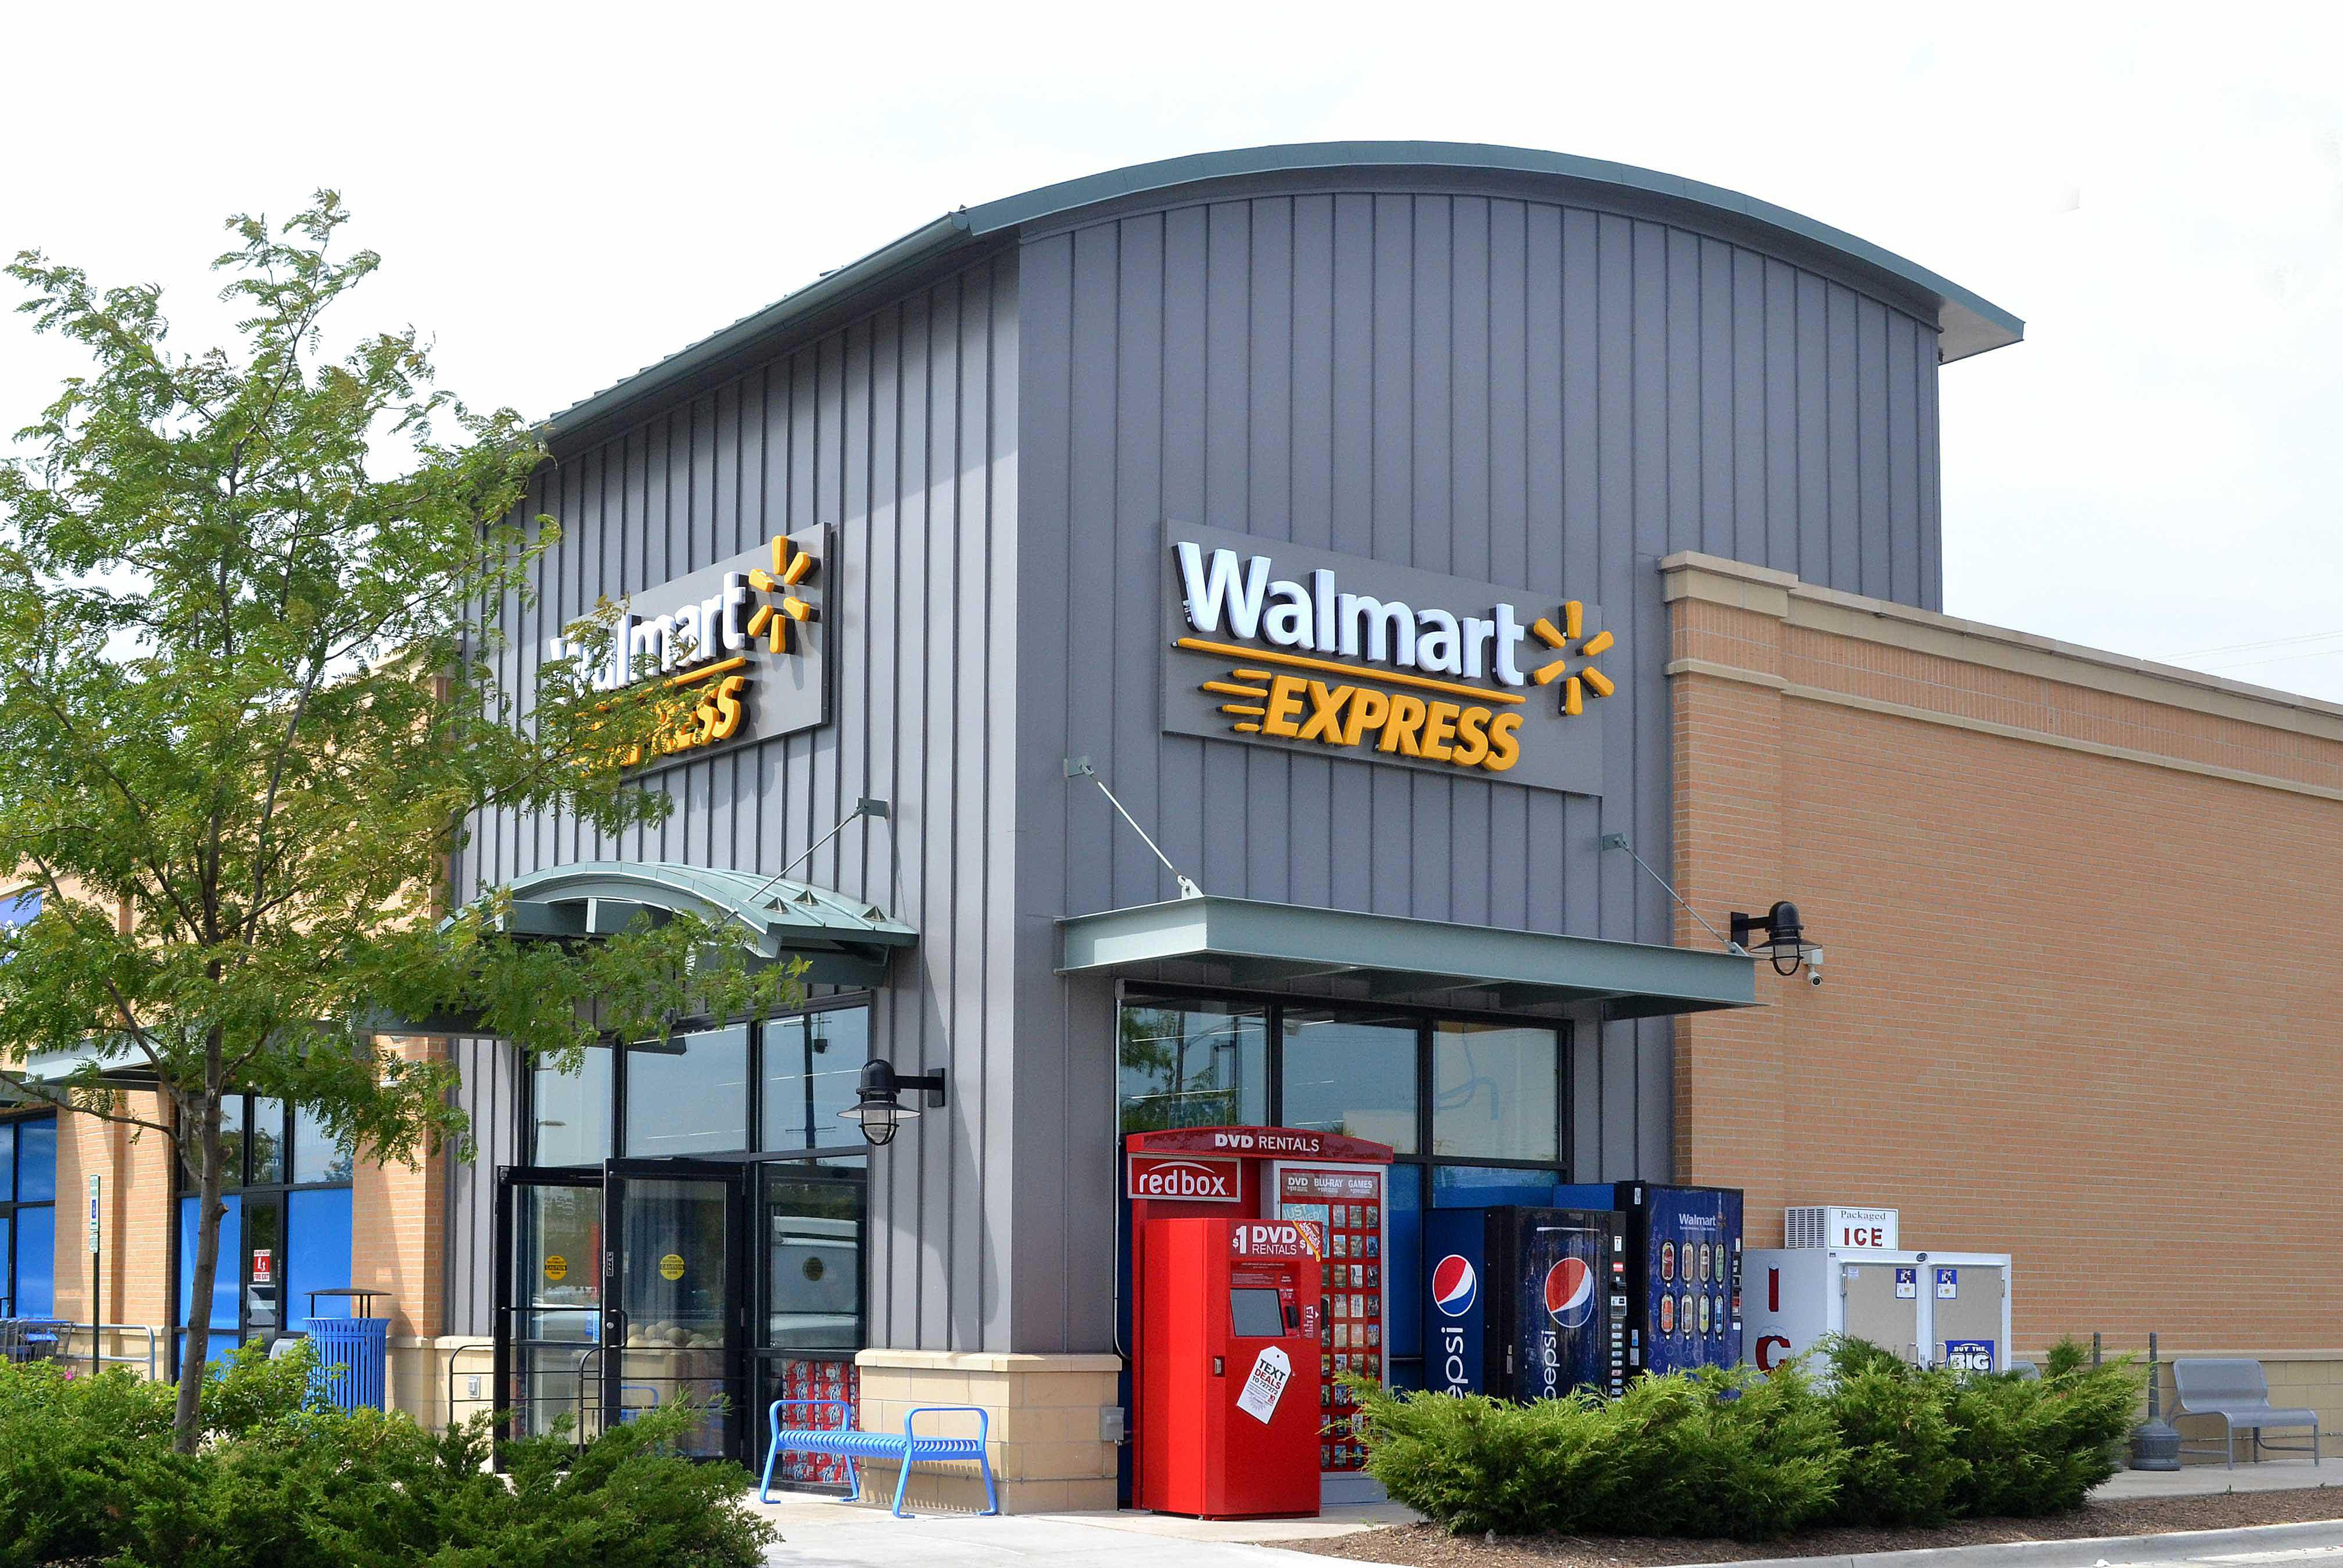 Towns Auto Sales Inc >> 2011 Walmart Plans to Open Walmart Express Stores